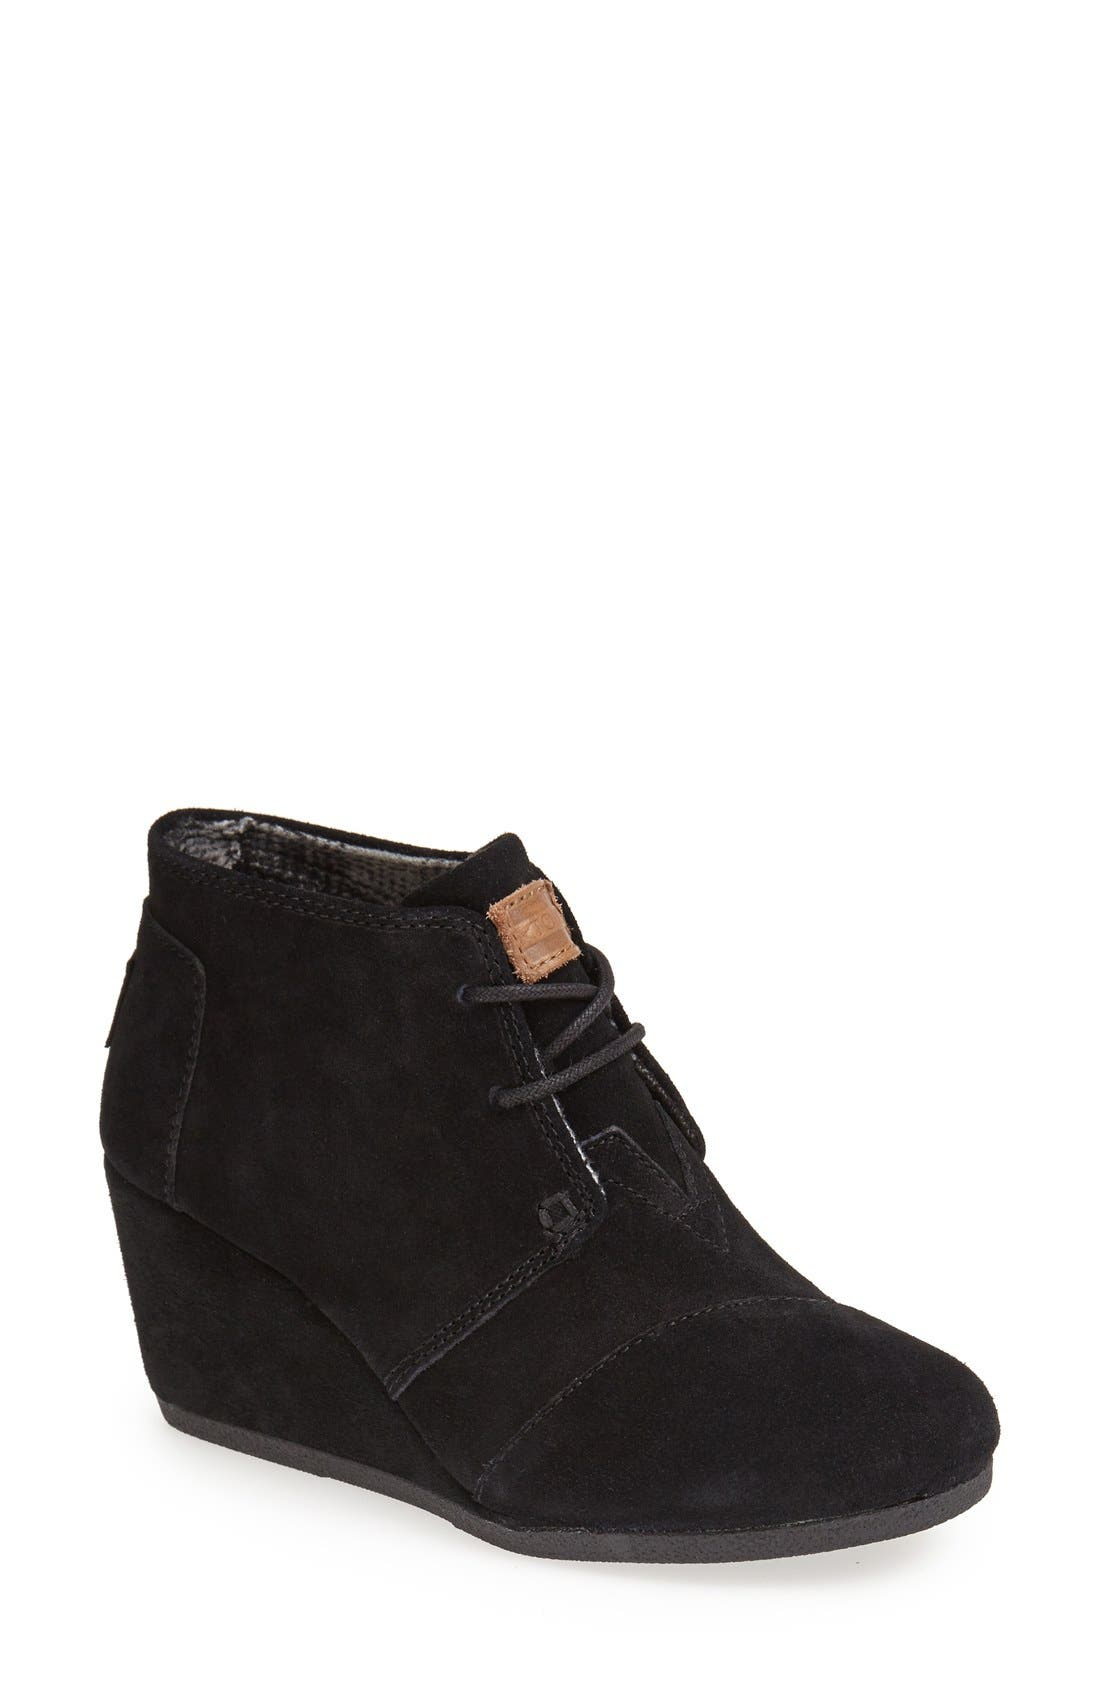 TOMS 'Desert' Wedge Bootie, Main, color, 001